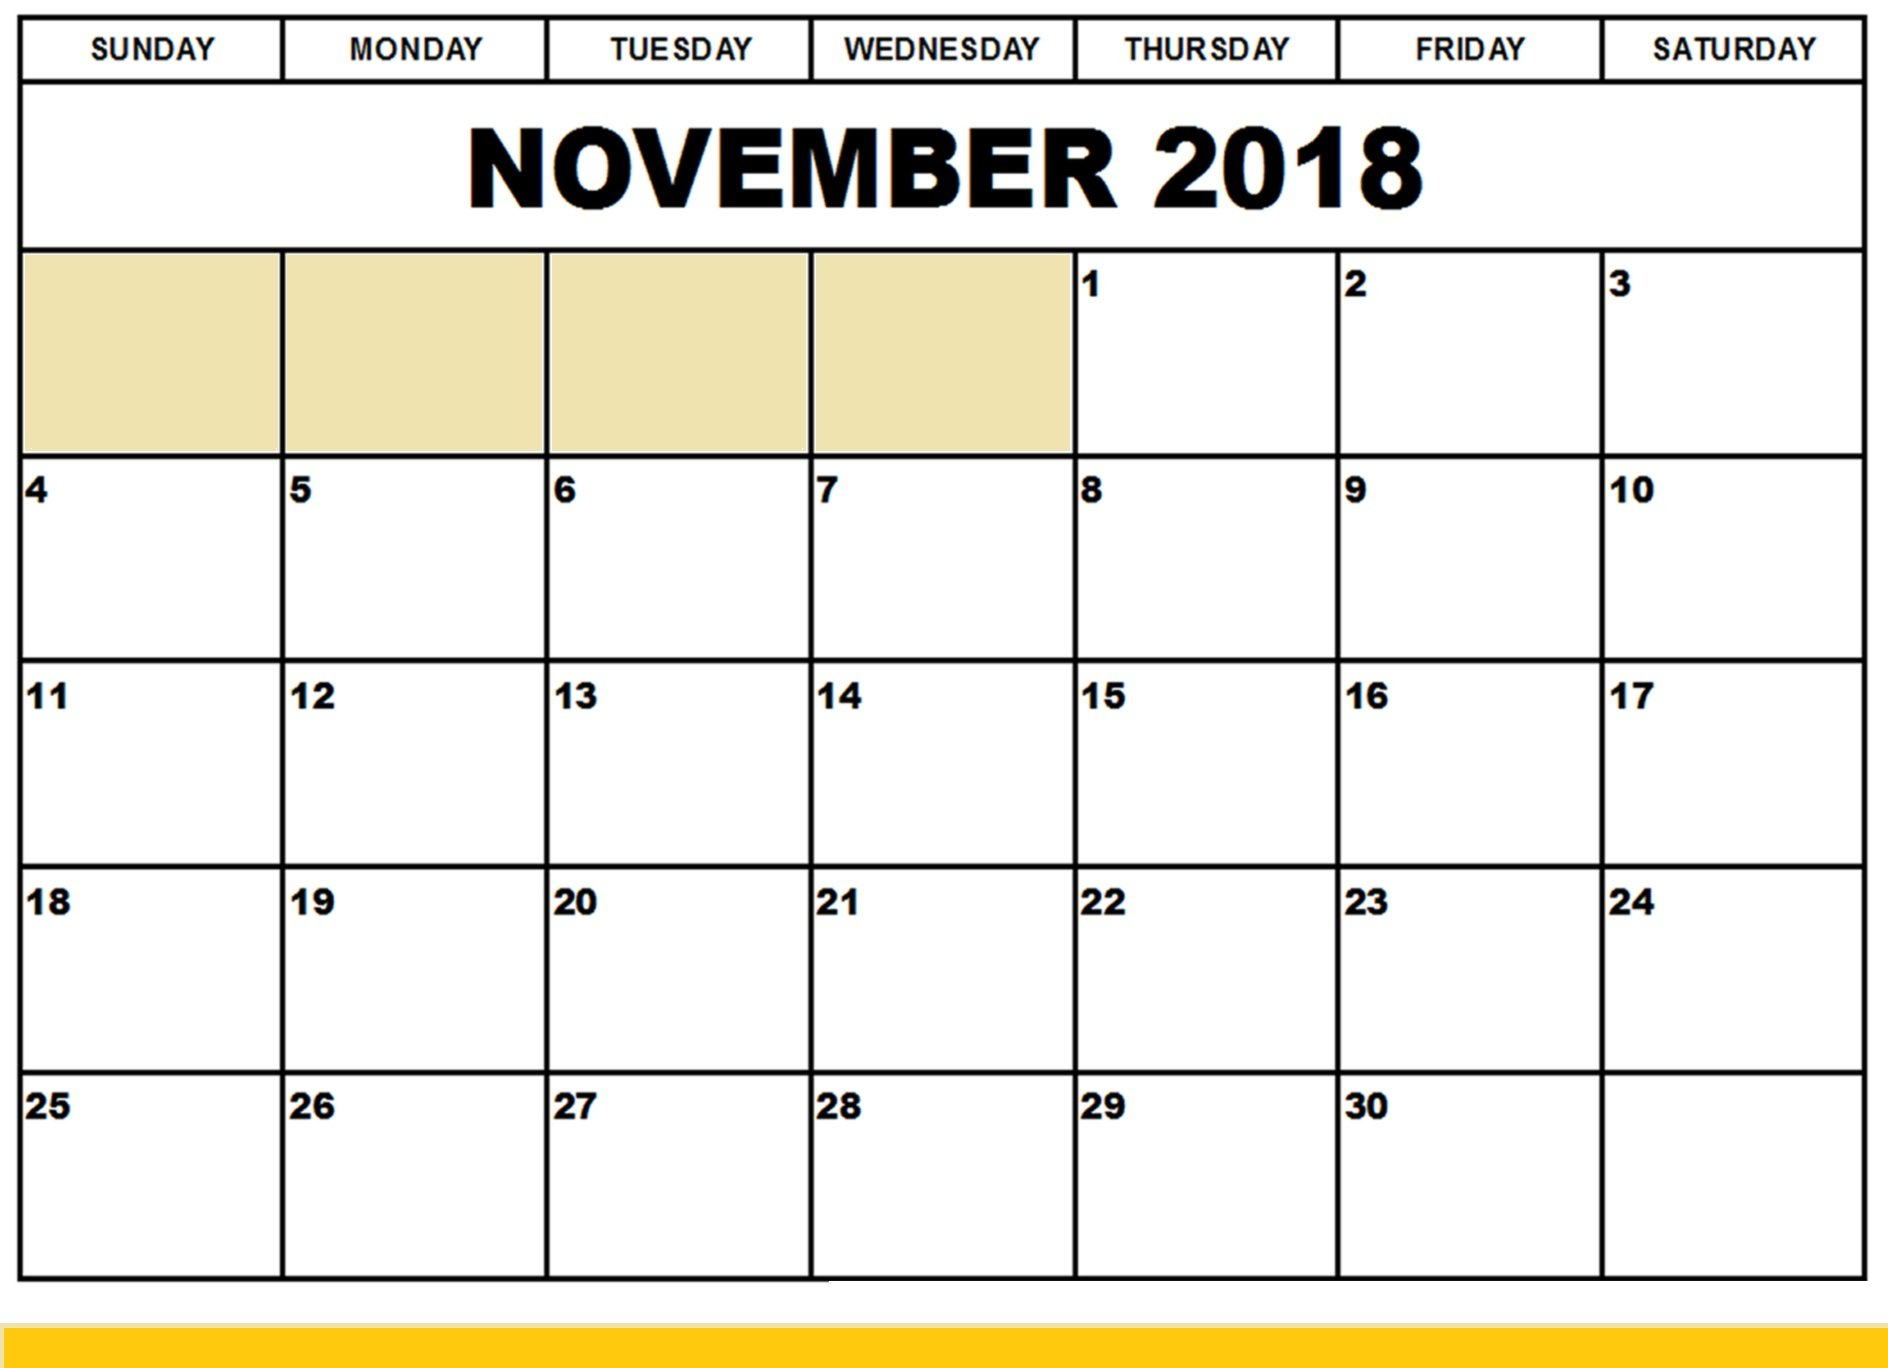 Printable Monthly Calendar That I Can Edit | Example Calender You Cann Edit With Holidays On It